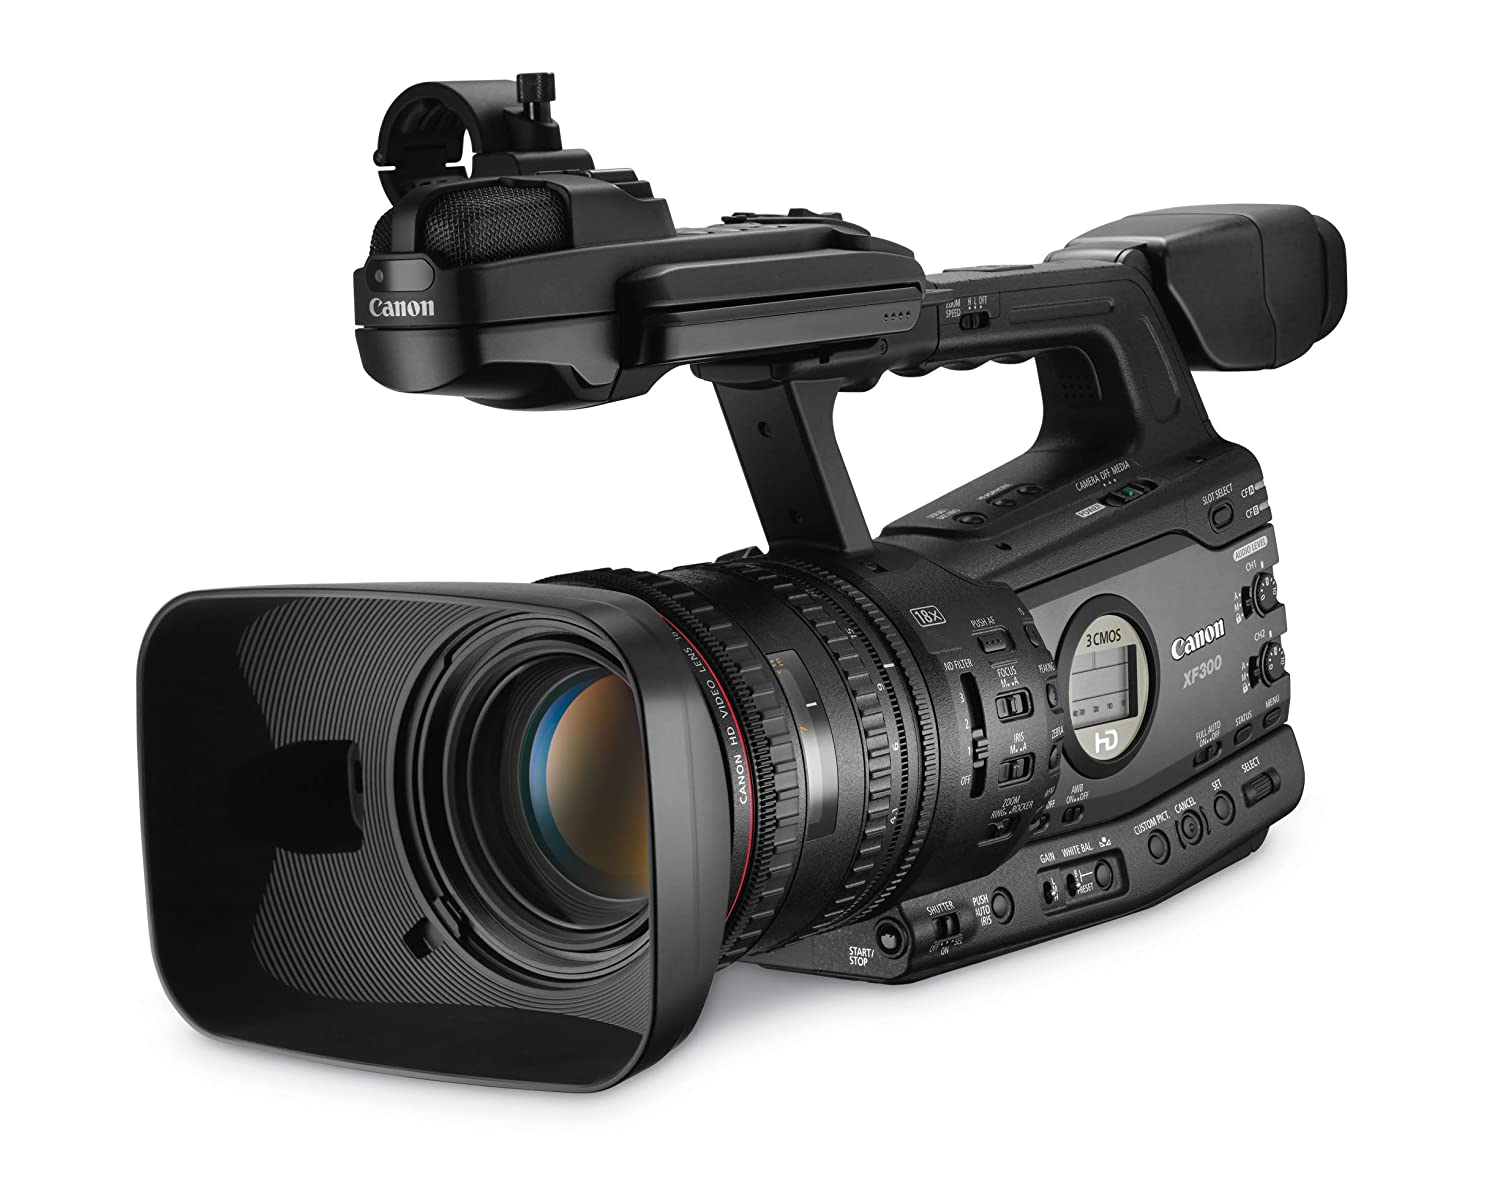 Top 10 Best Professional Camcorders (2020 Reviews & Buying Guide) 10